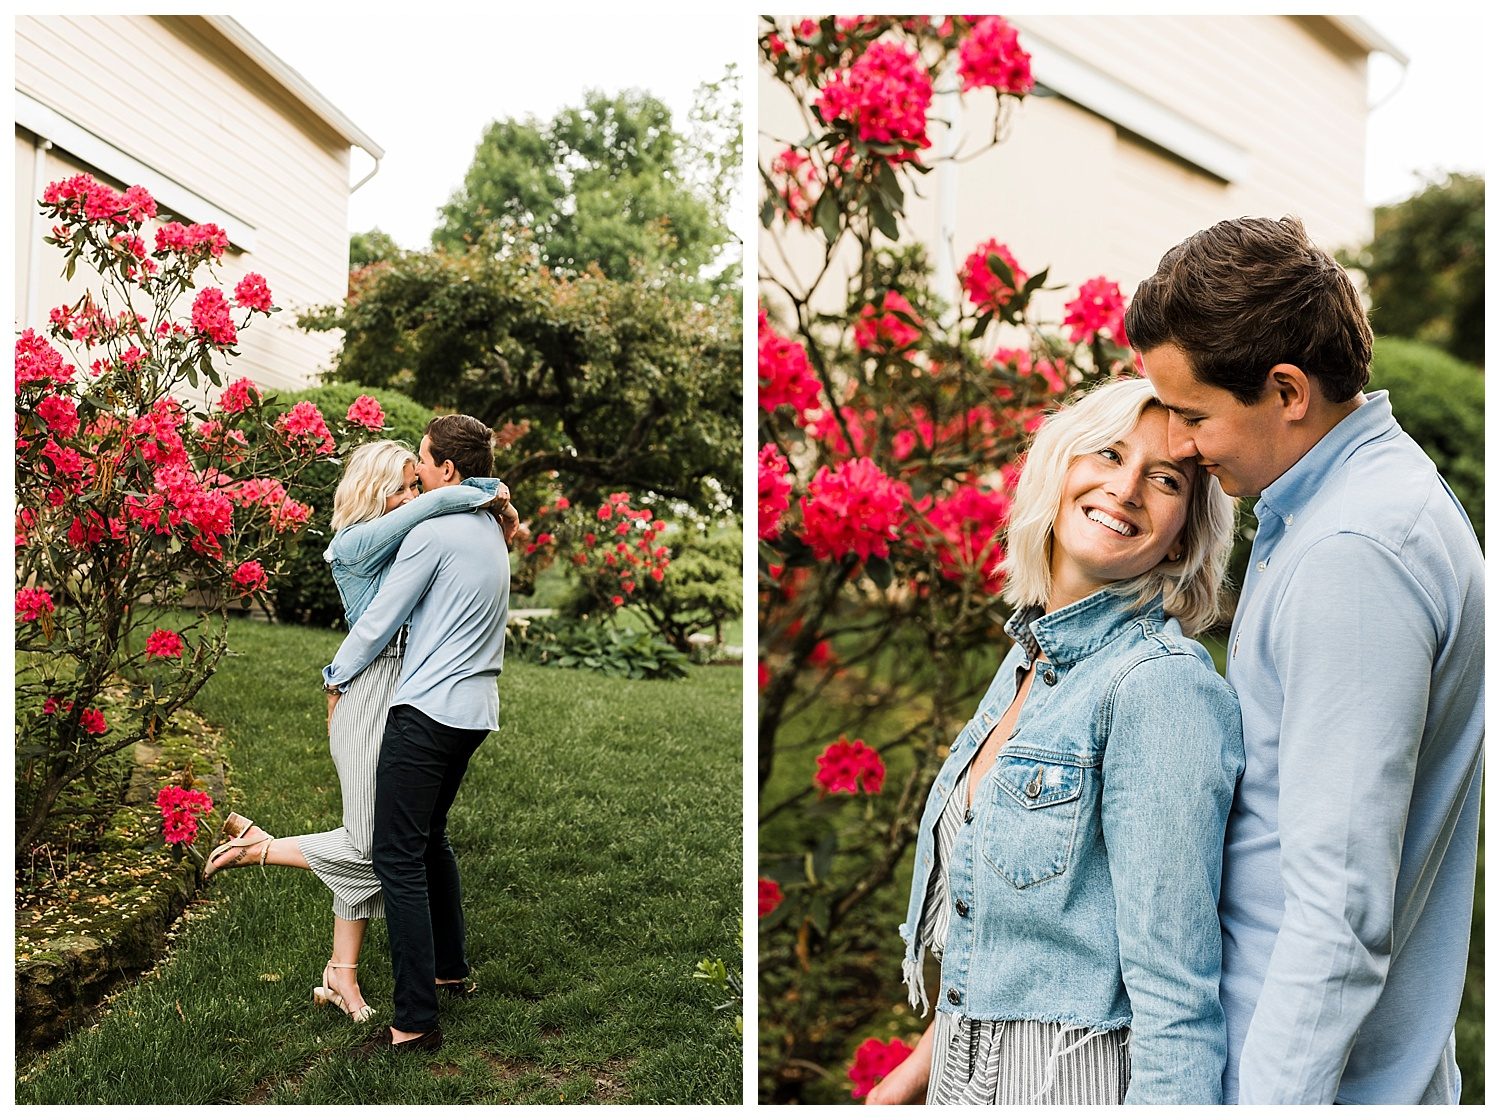 Hunterdon_County_Engagement_Session_Apollo_Fields01.jpg